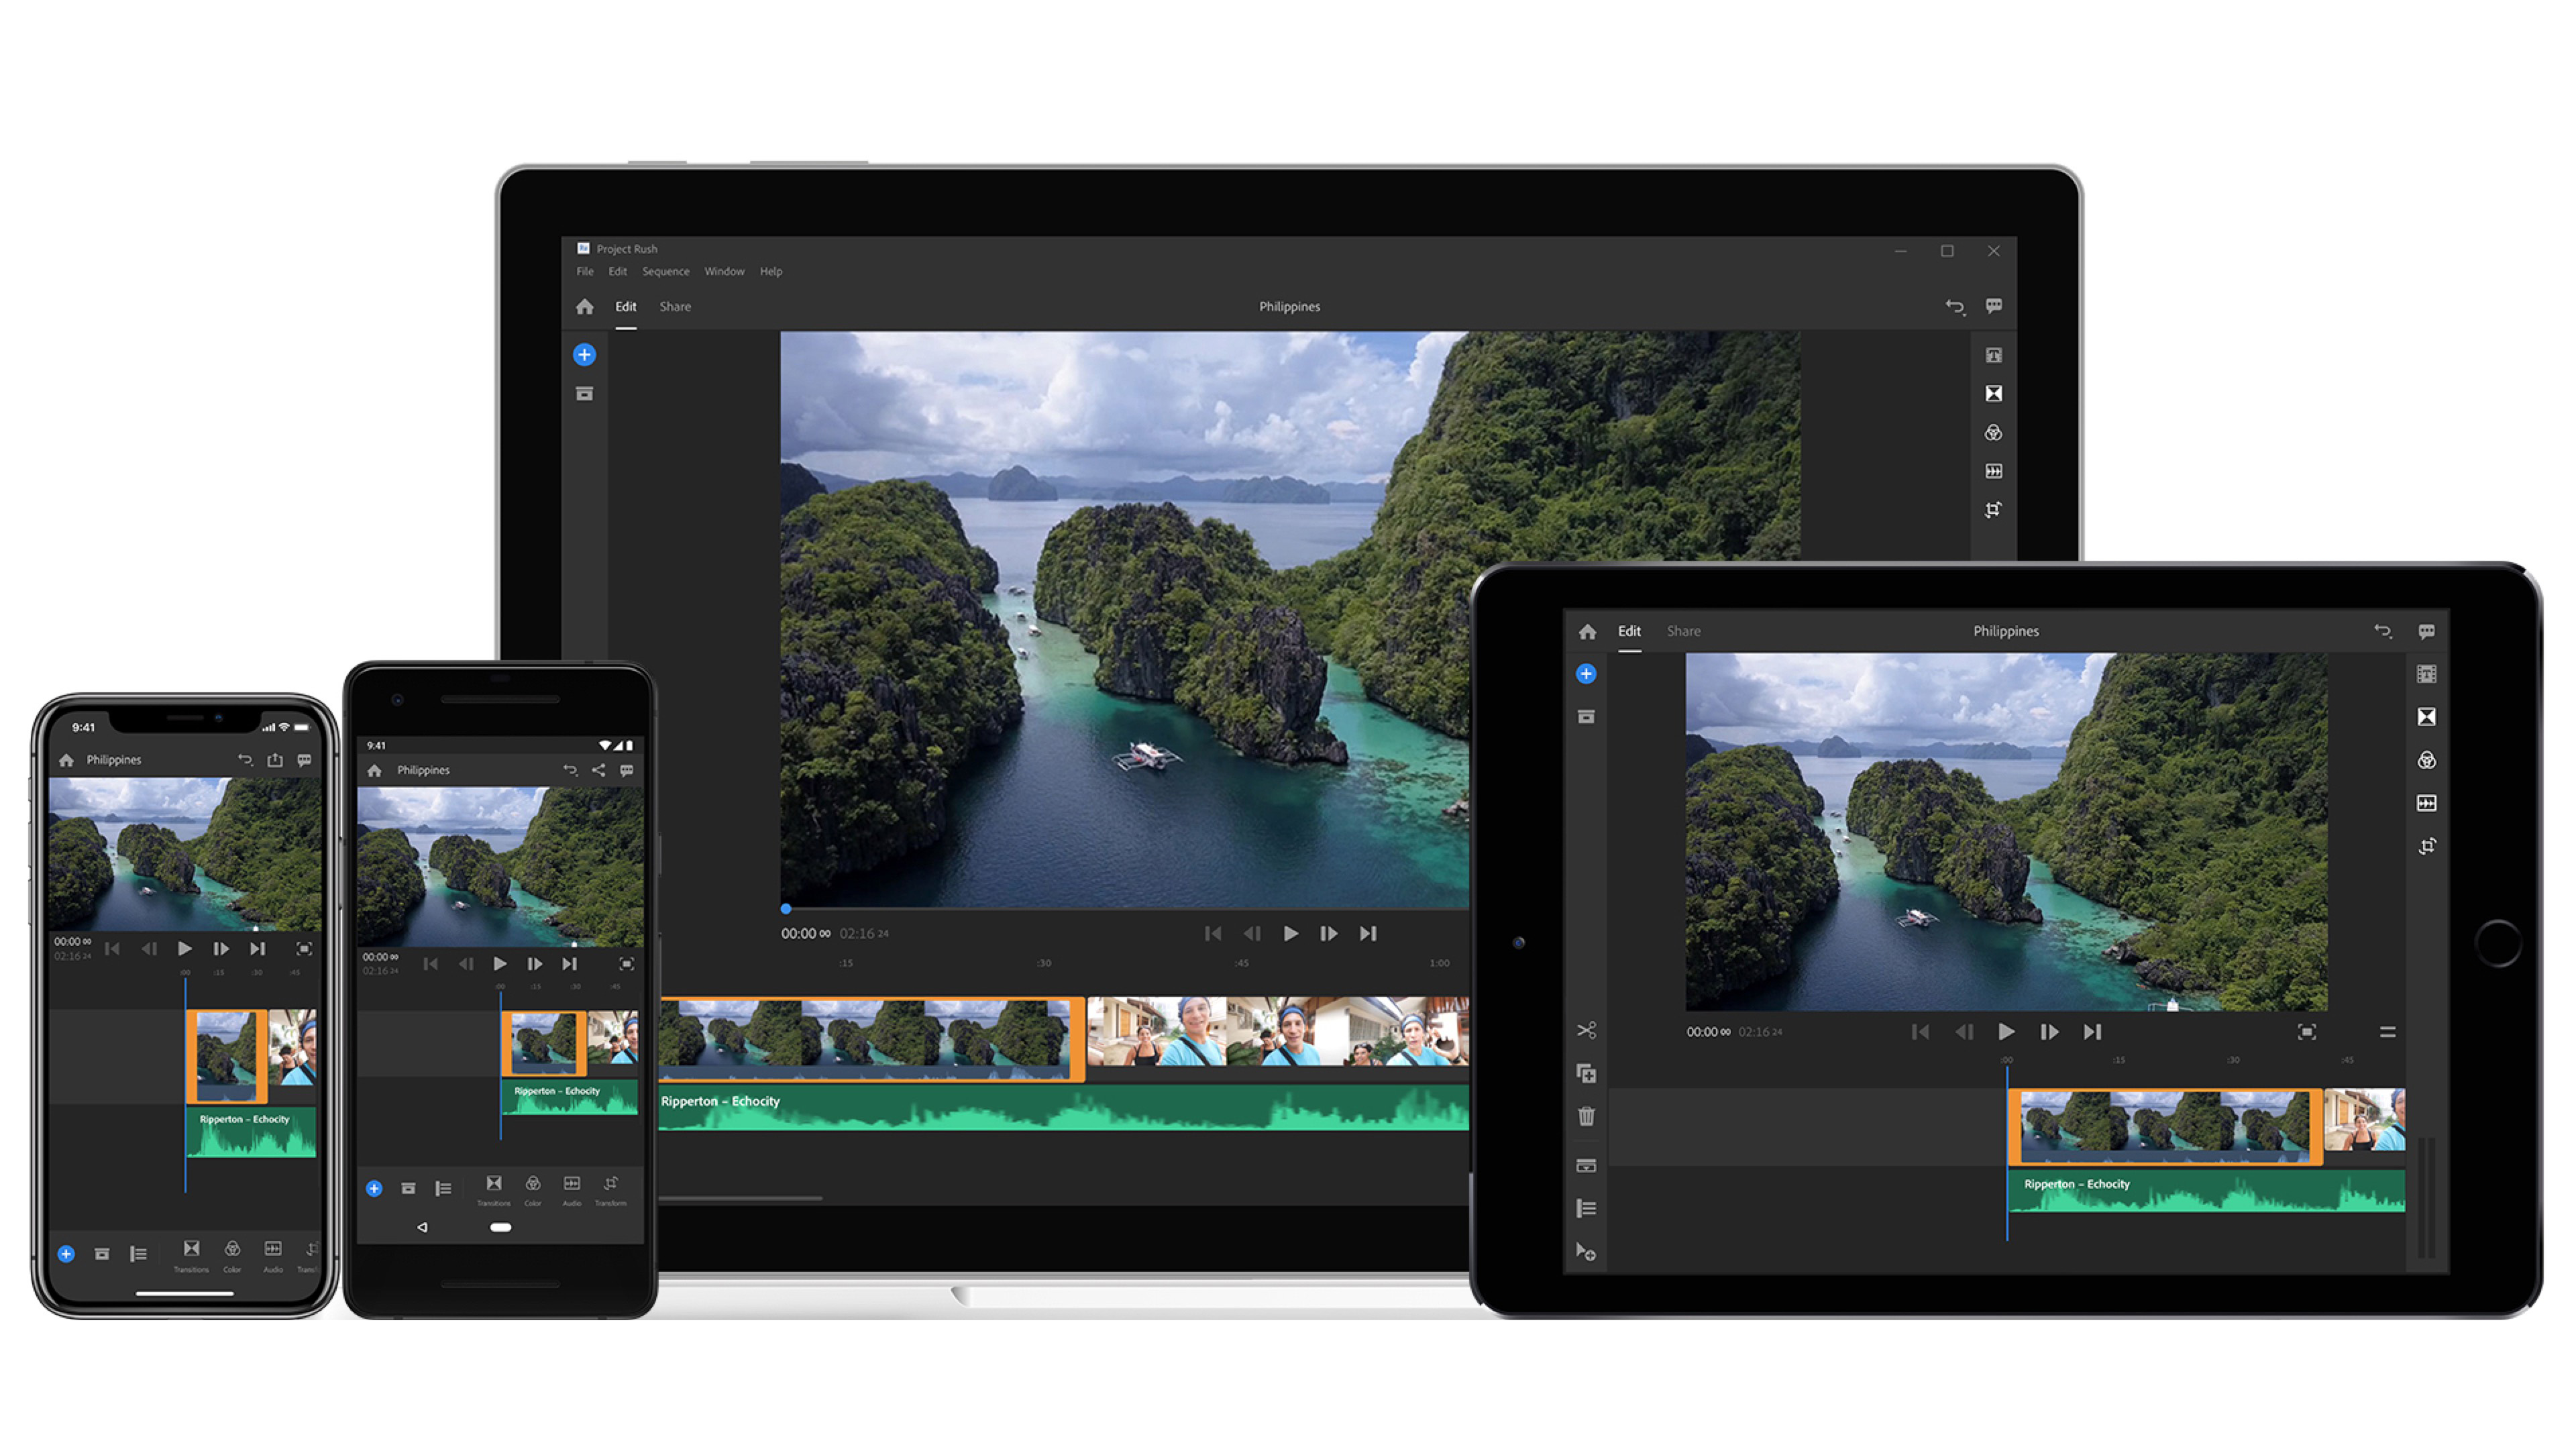 adobe max 2018 premiere rush cc released apple photos to lightroom migration xd voice apps more